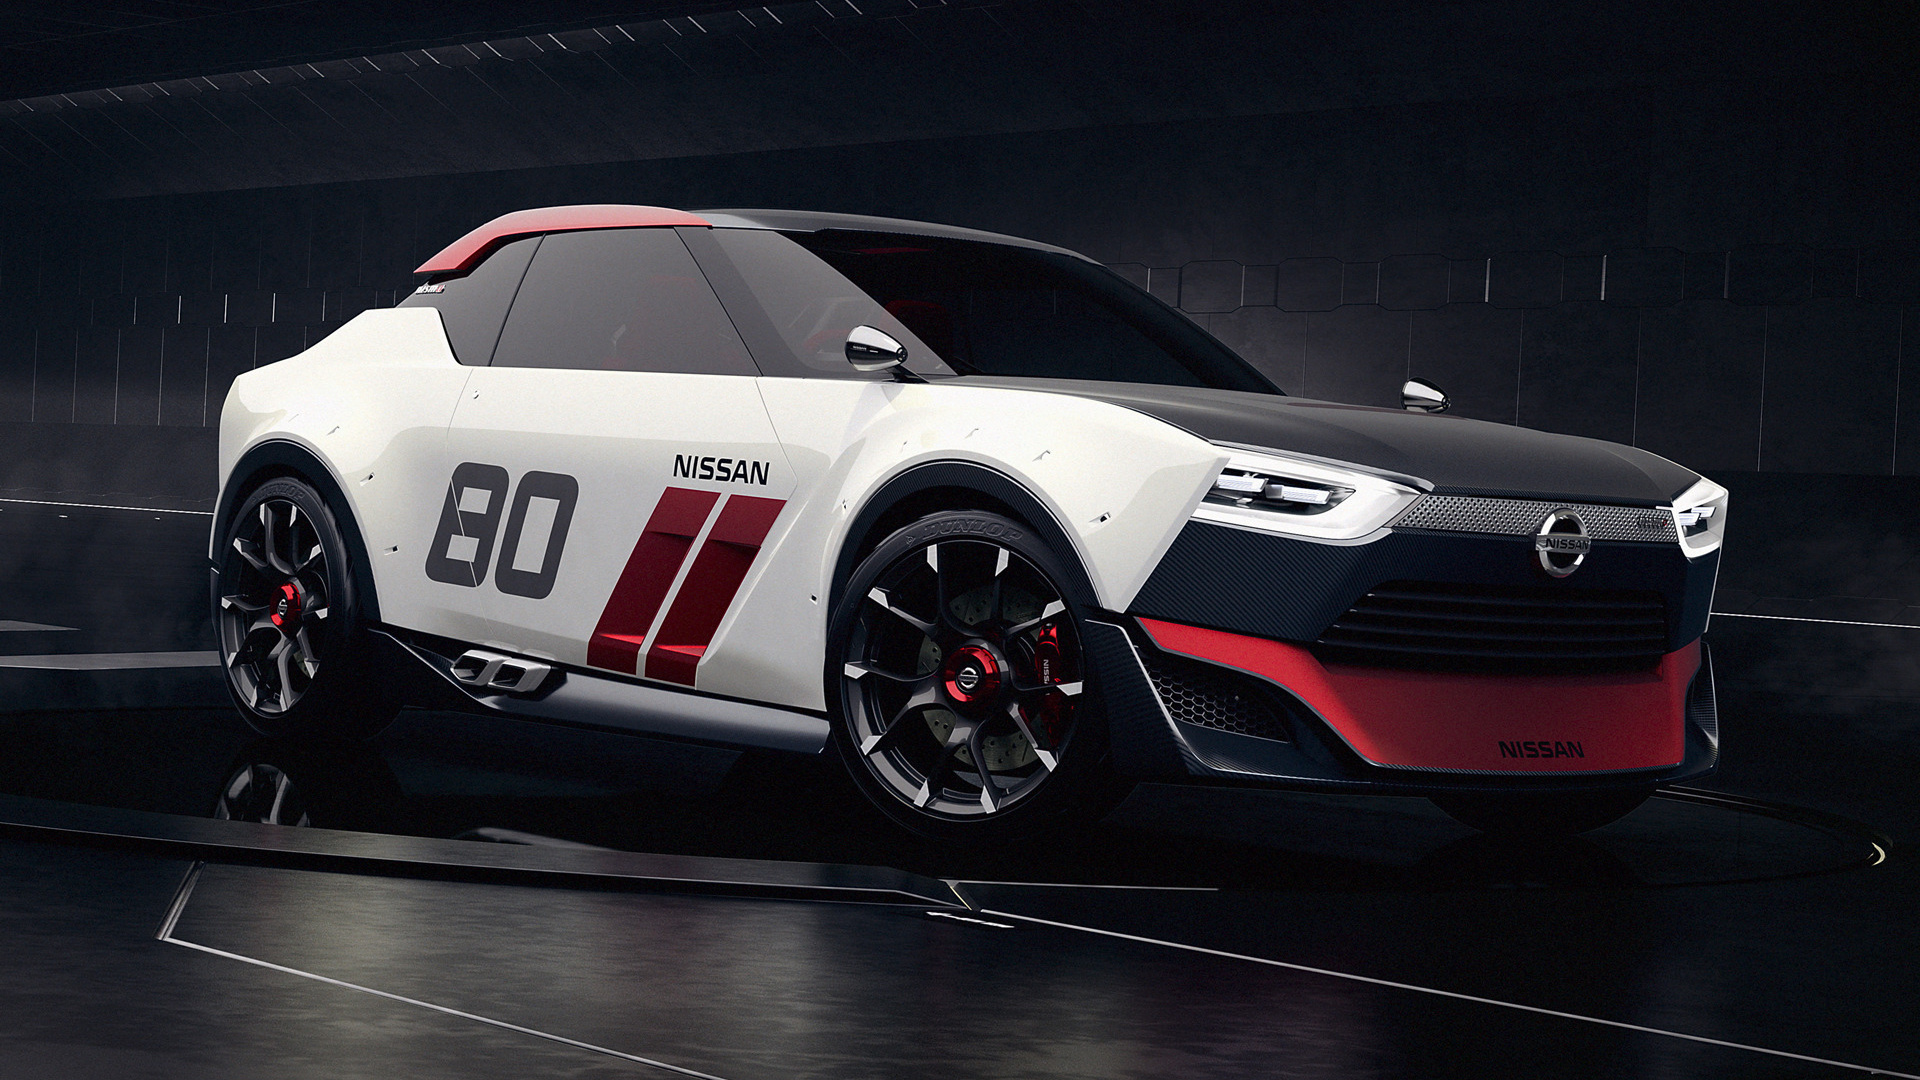 2013 Nissan IDx Nismo Concept - Wallpapers and HD Images ...